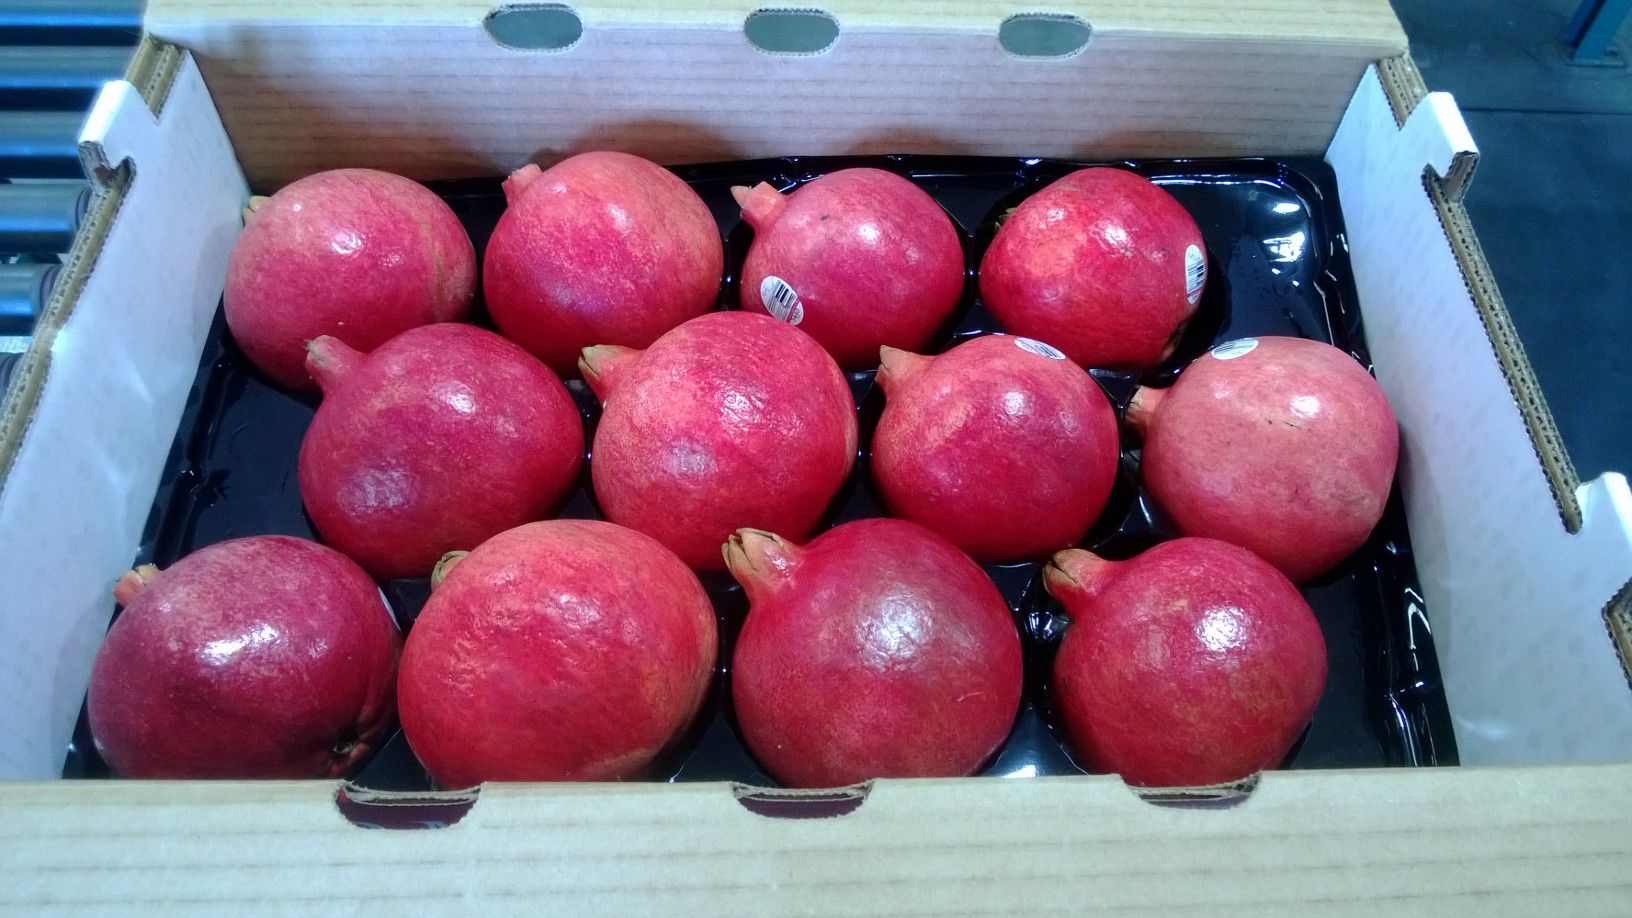 Wonderful variety pomegranates freshly harvested. They are being boxed for shipping to produce markets around the US.  http://rubyfresh.com/fresh-fruit/